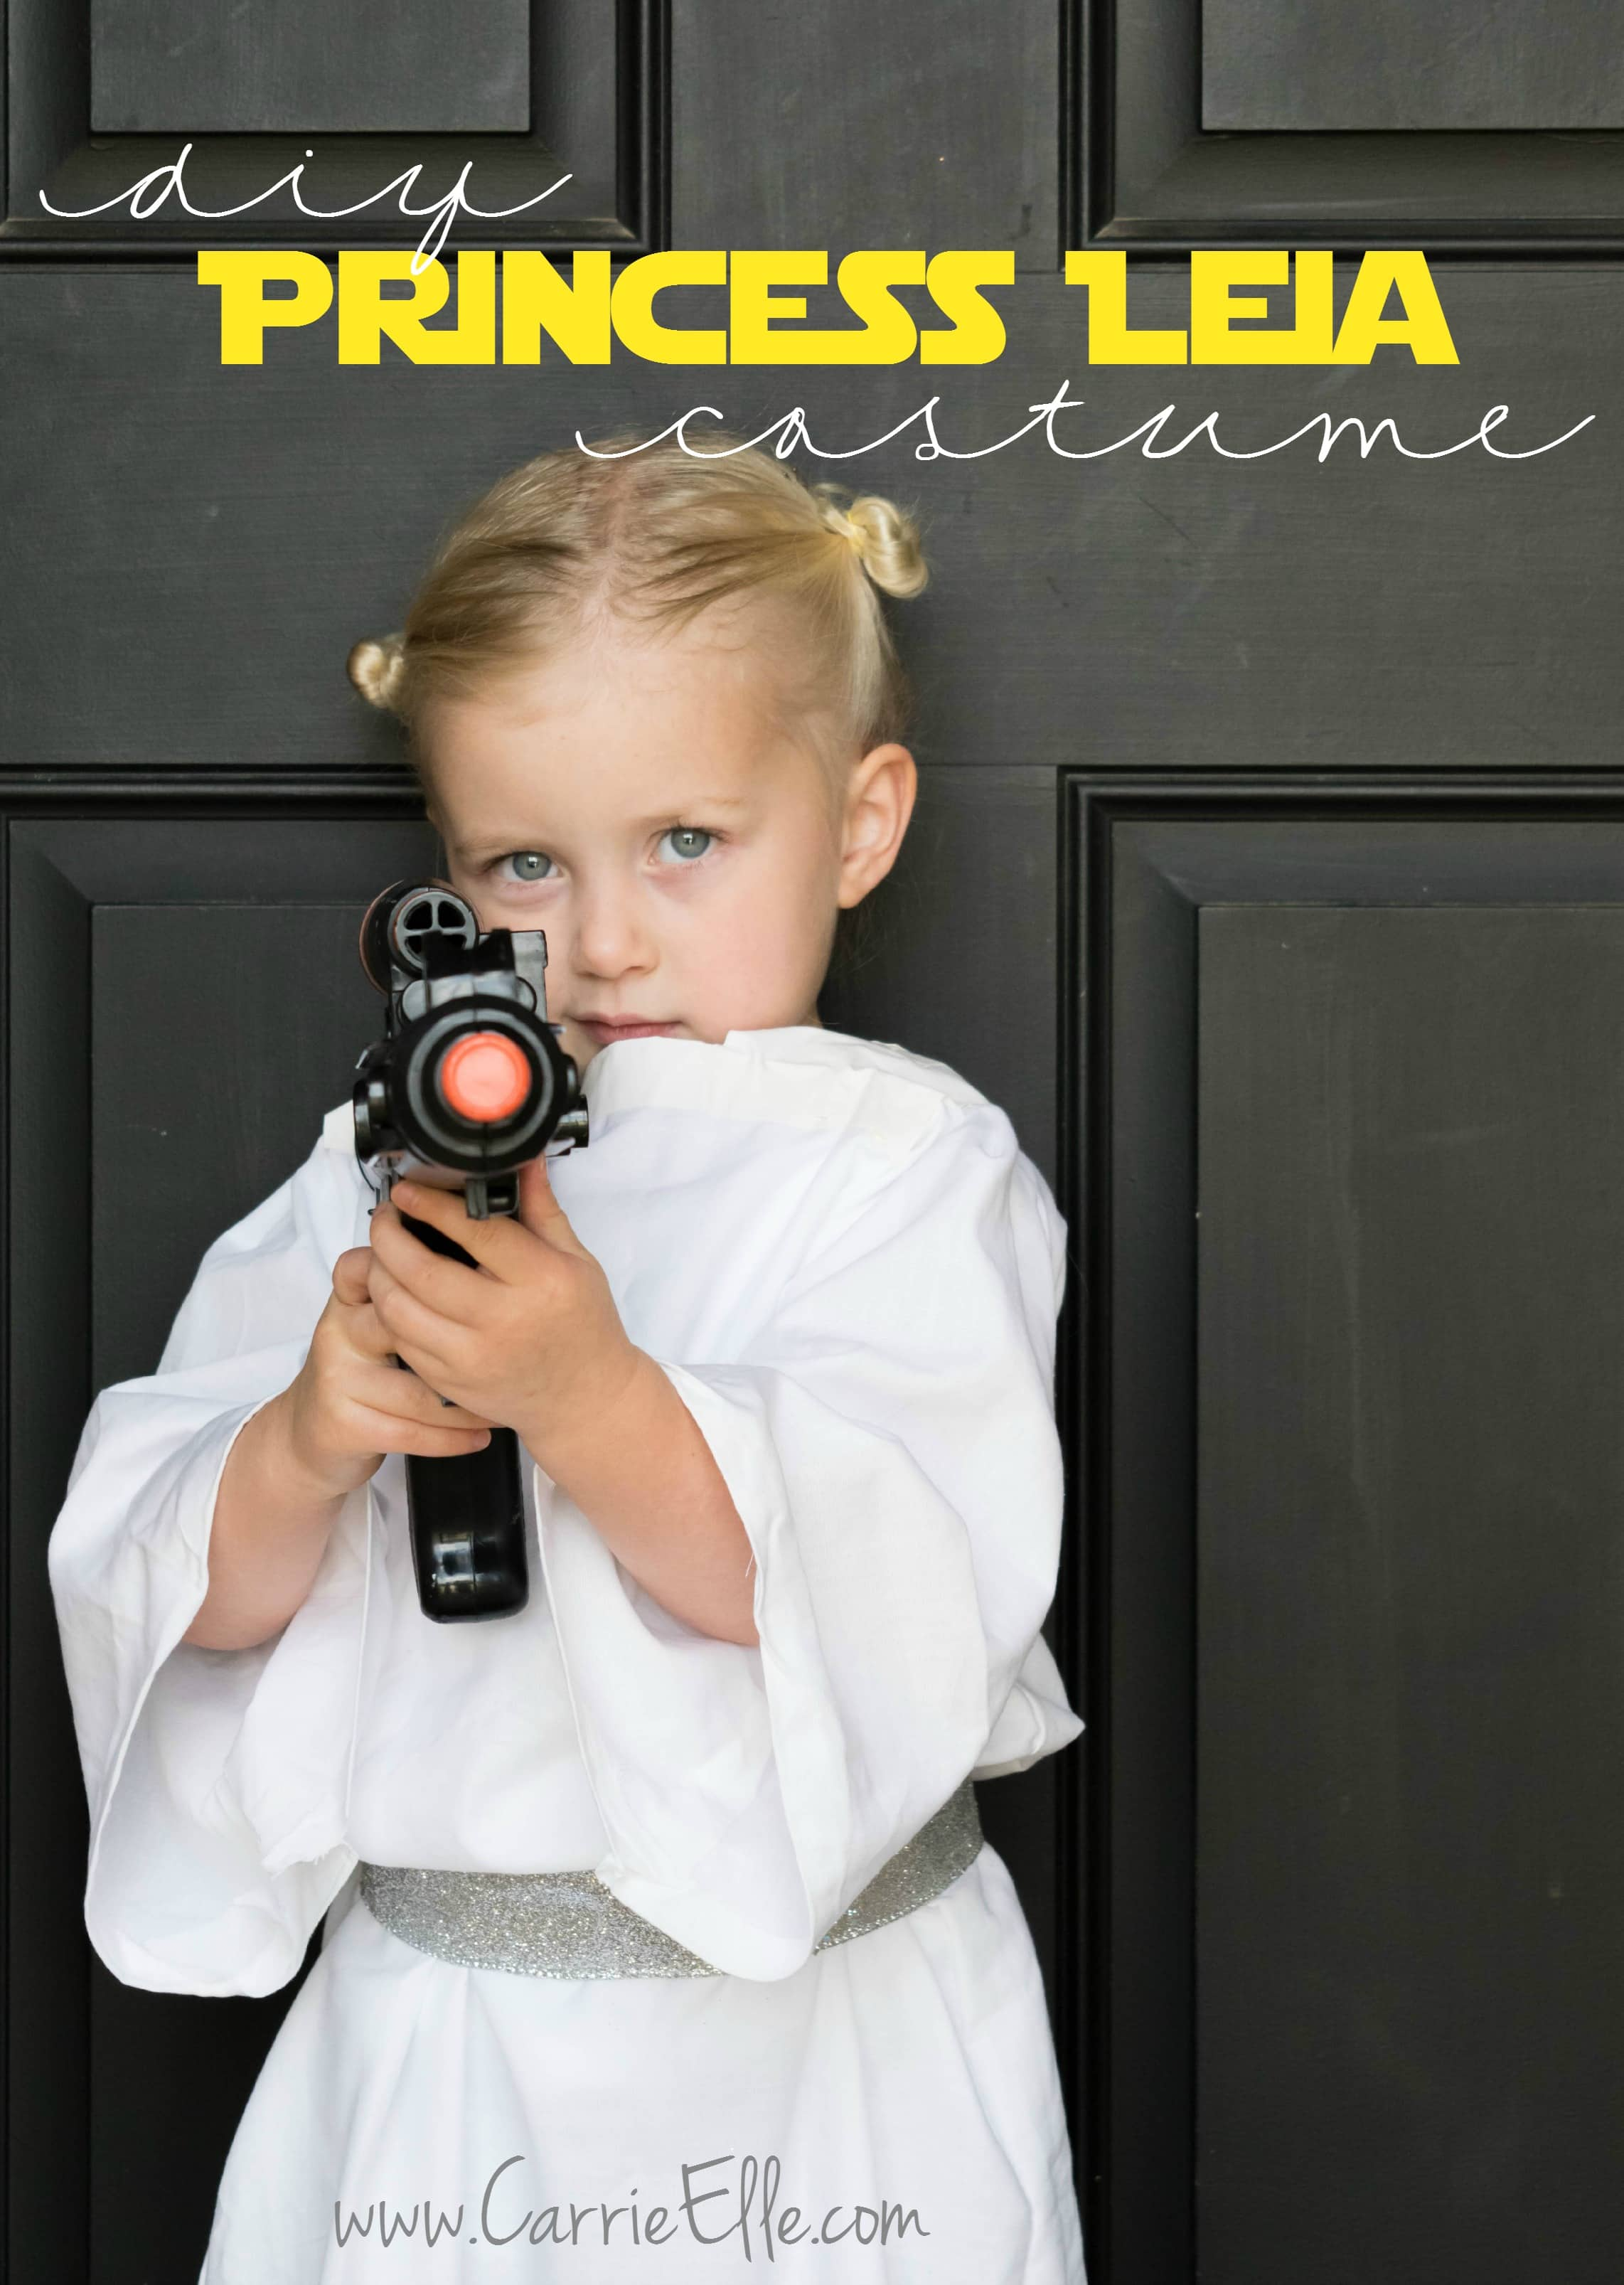 These no-sew Leia costume instructions from Carrie Elle are exactly what you need if you have a white bedsheet on hand and an eager child interested in a Leia costume. Buns and a pretend blaster.